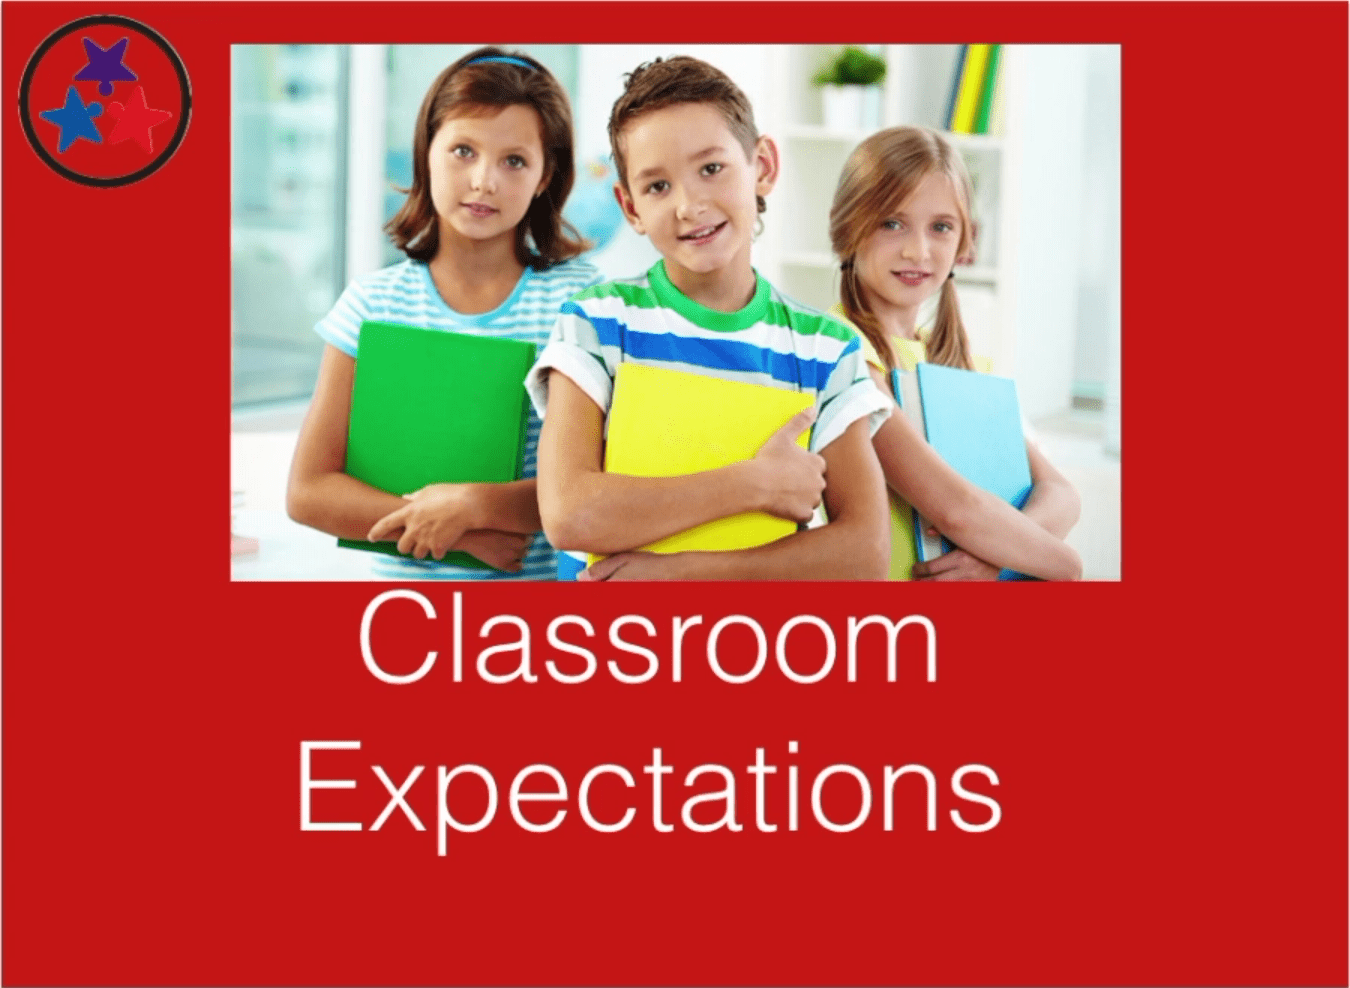 Classroom Management 3 - Teaching Class-wide Expectations and Procedures